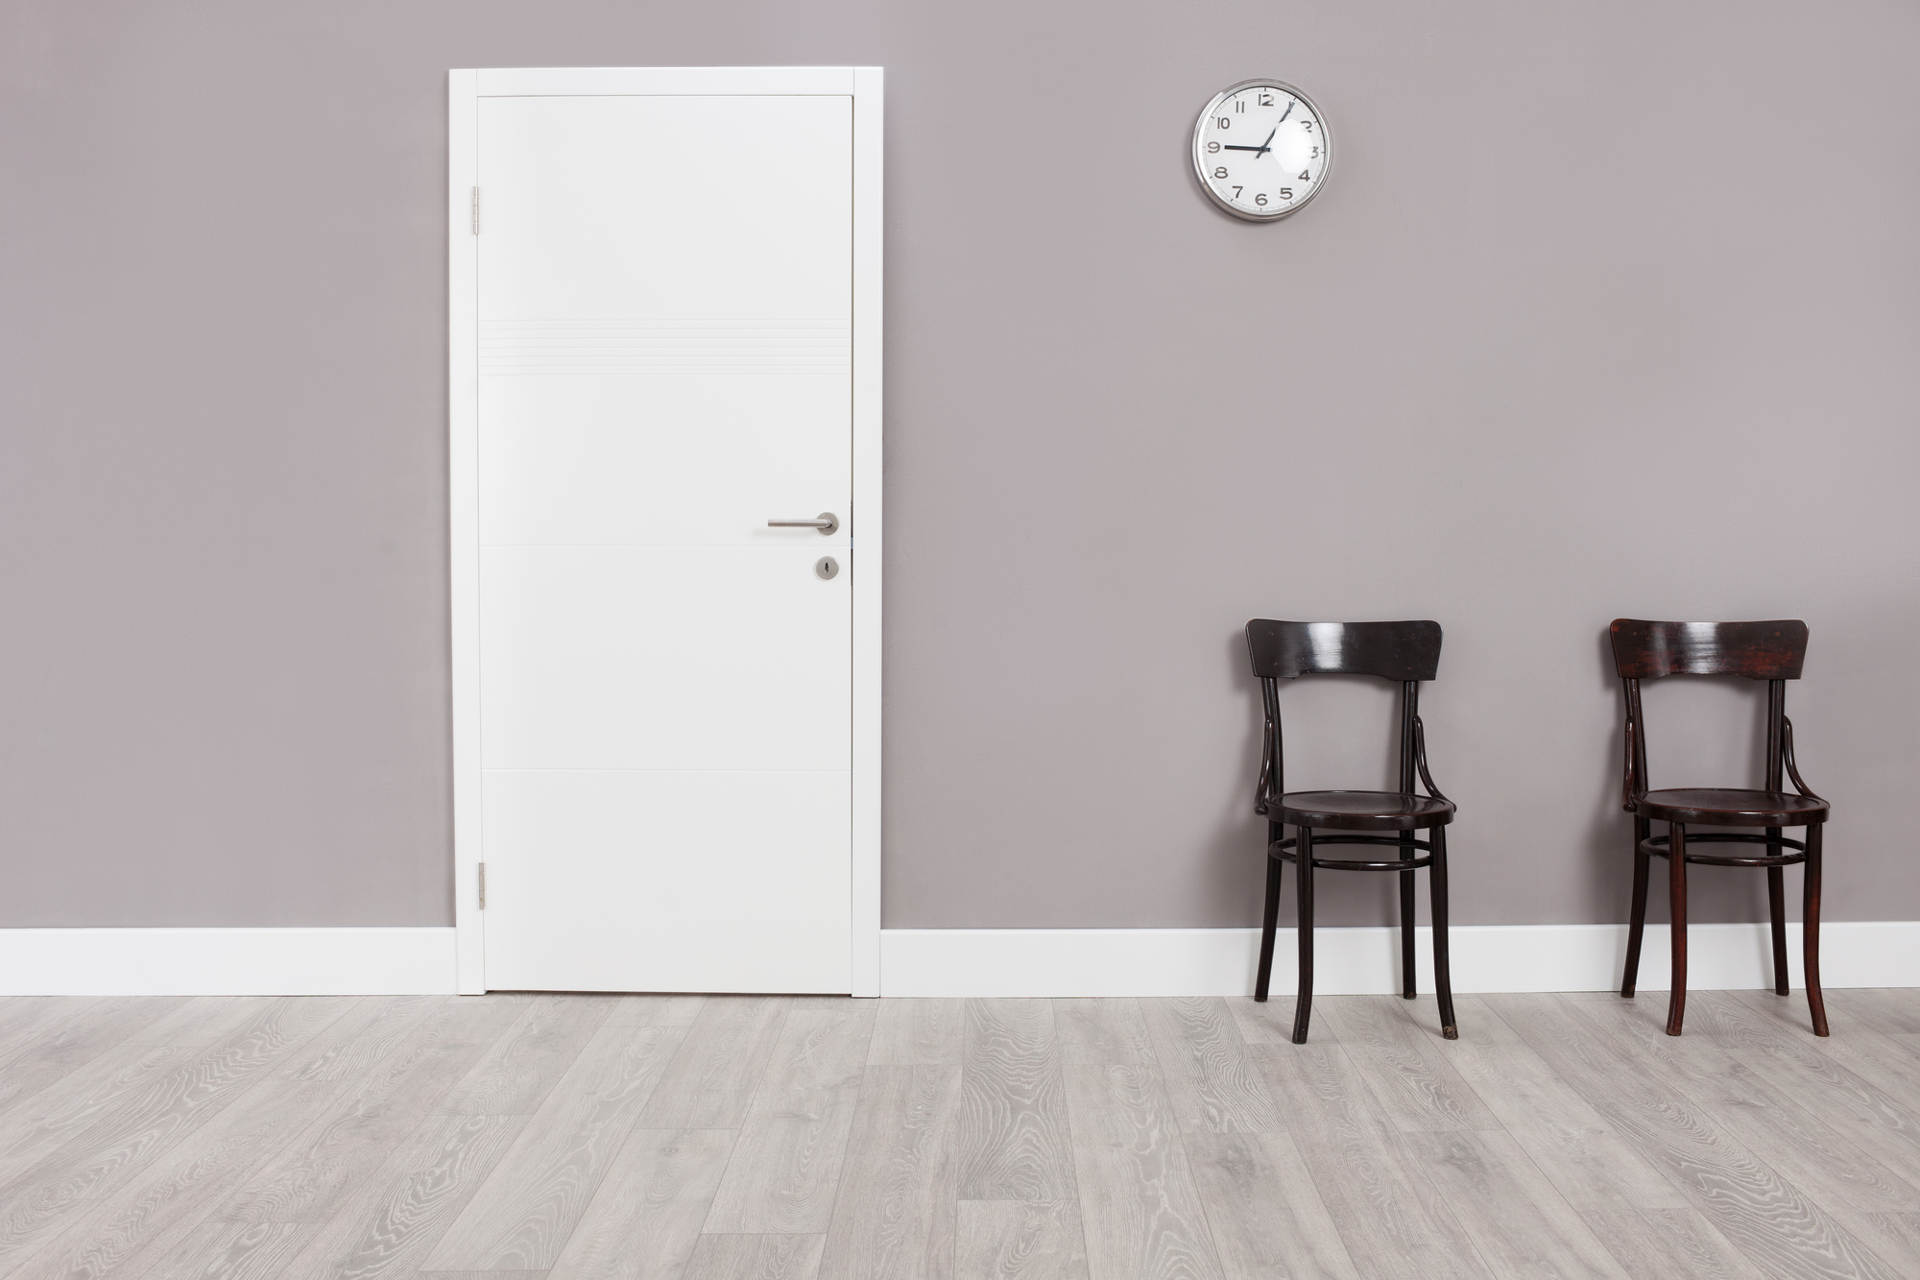 How to Establish an Open Door Policy